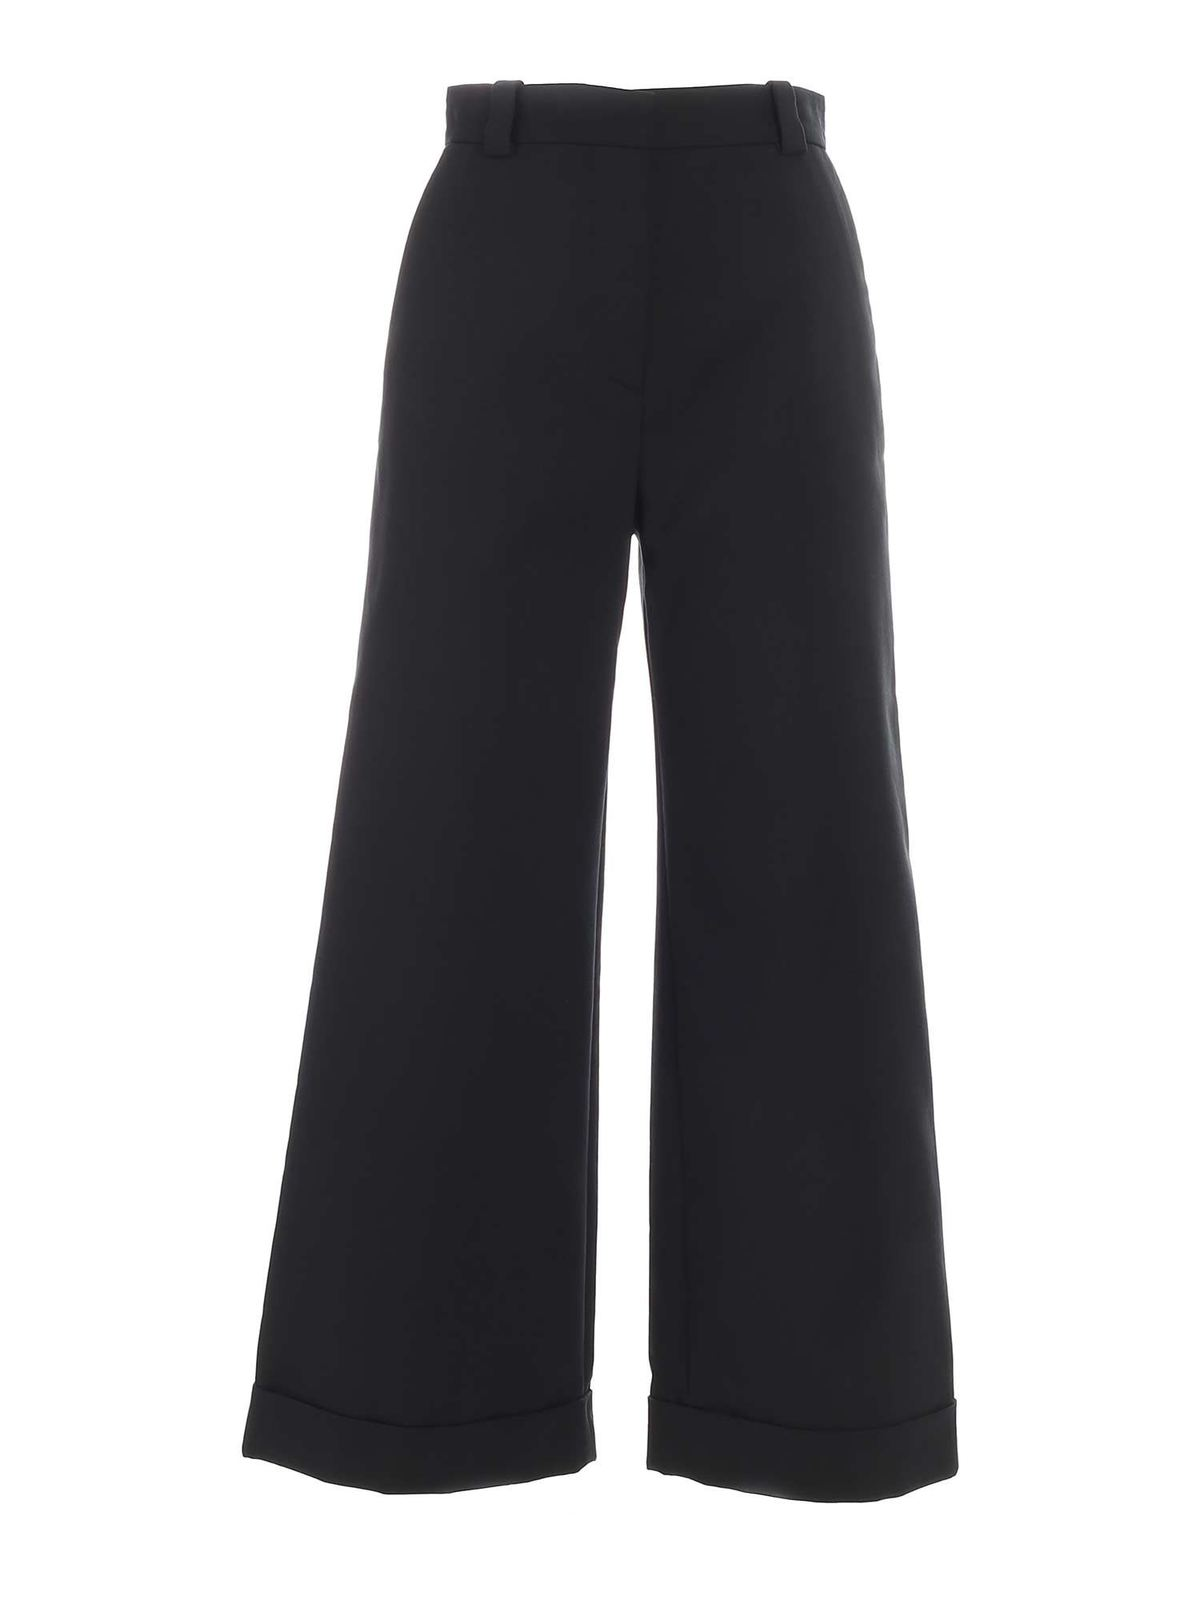 See By Chloé Cottons WIDE LEG PANTS IN GREEN